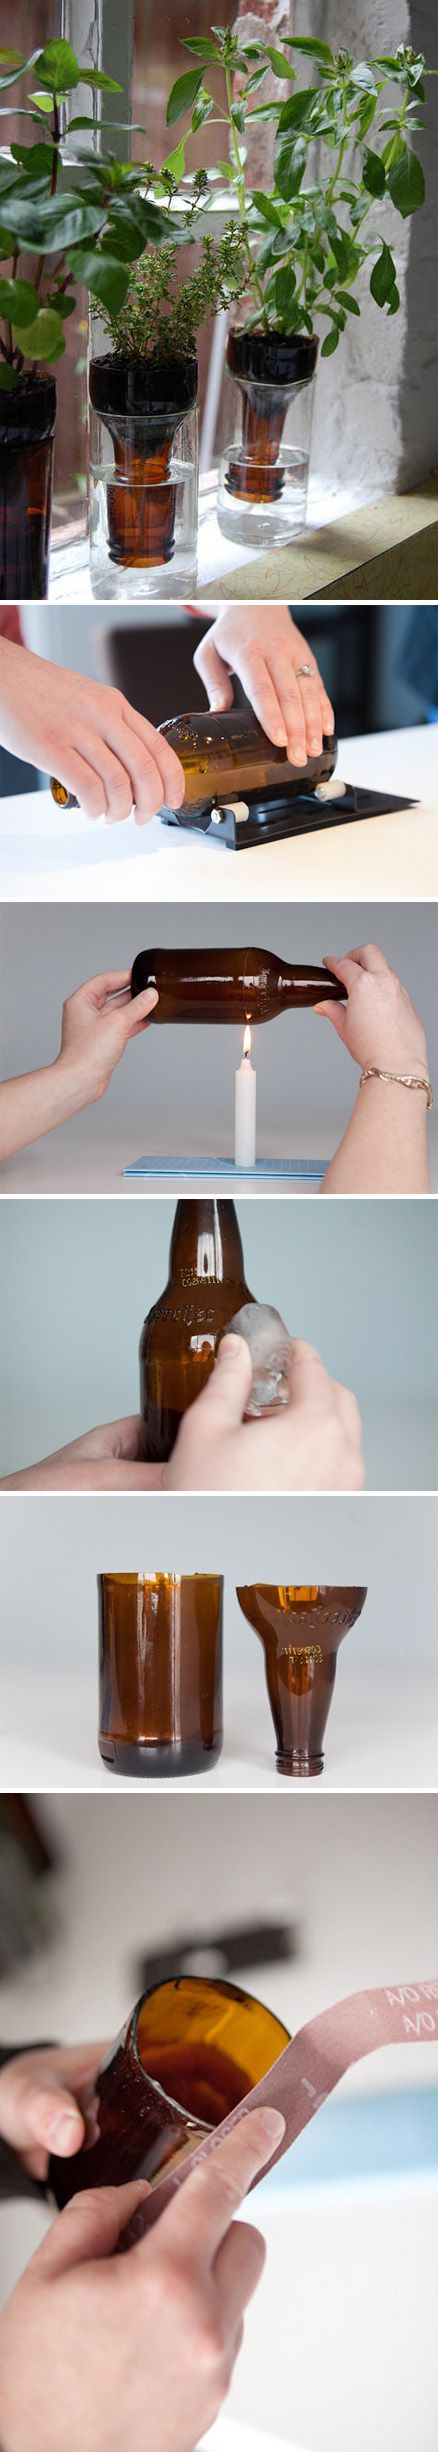 How To Convert Beer bottles into the shape of a vase